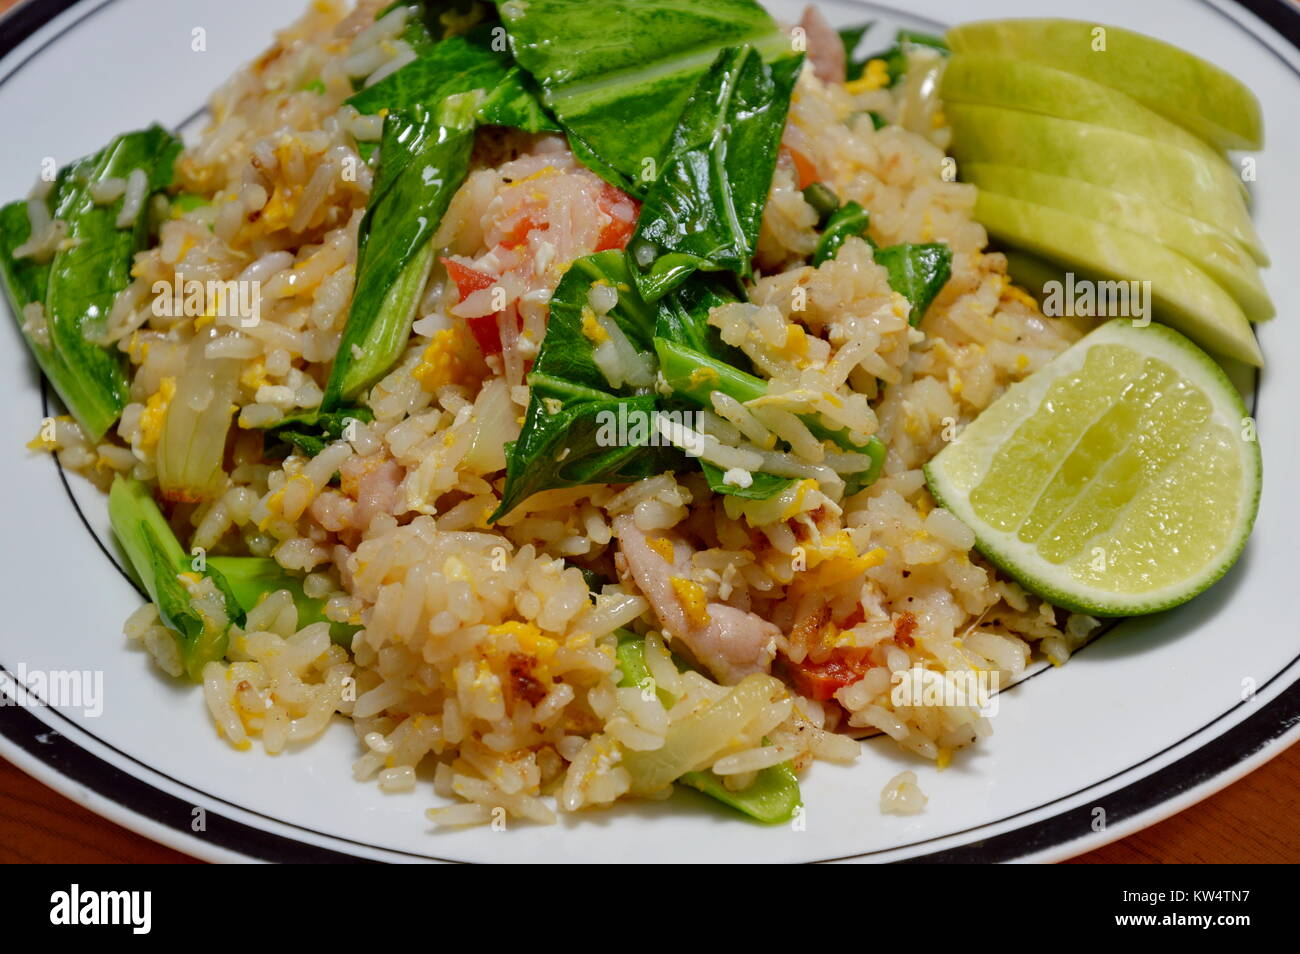 fried rice with Chinese kale and pork on plate Stock Photo